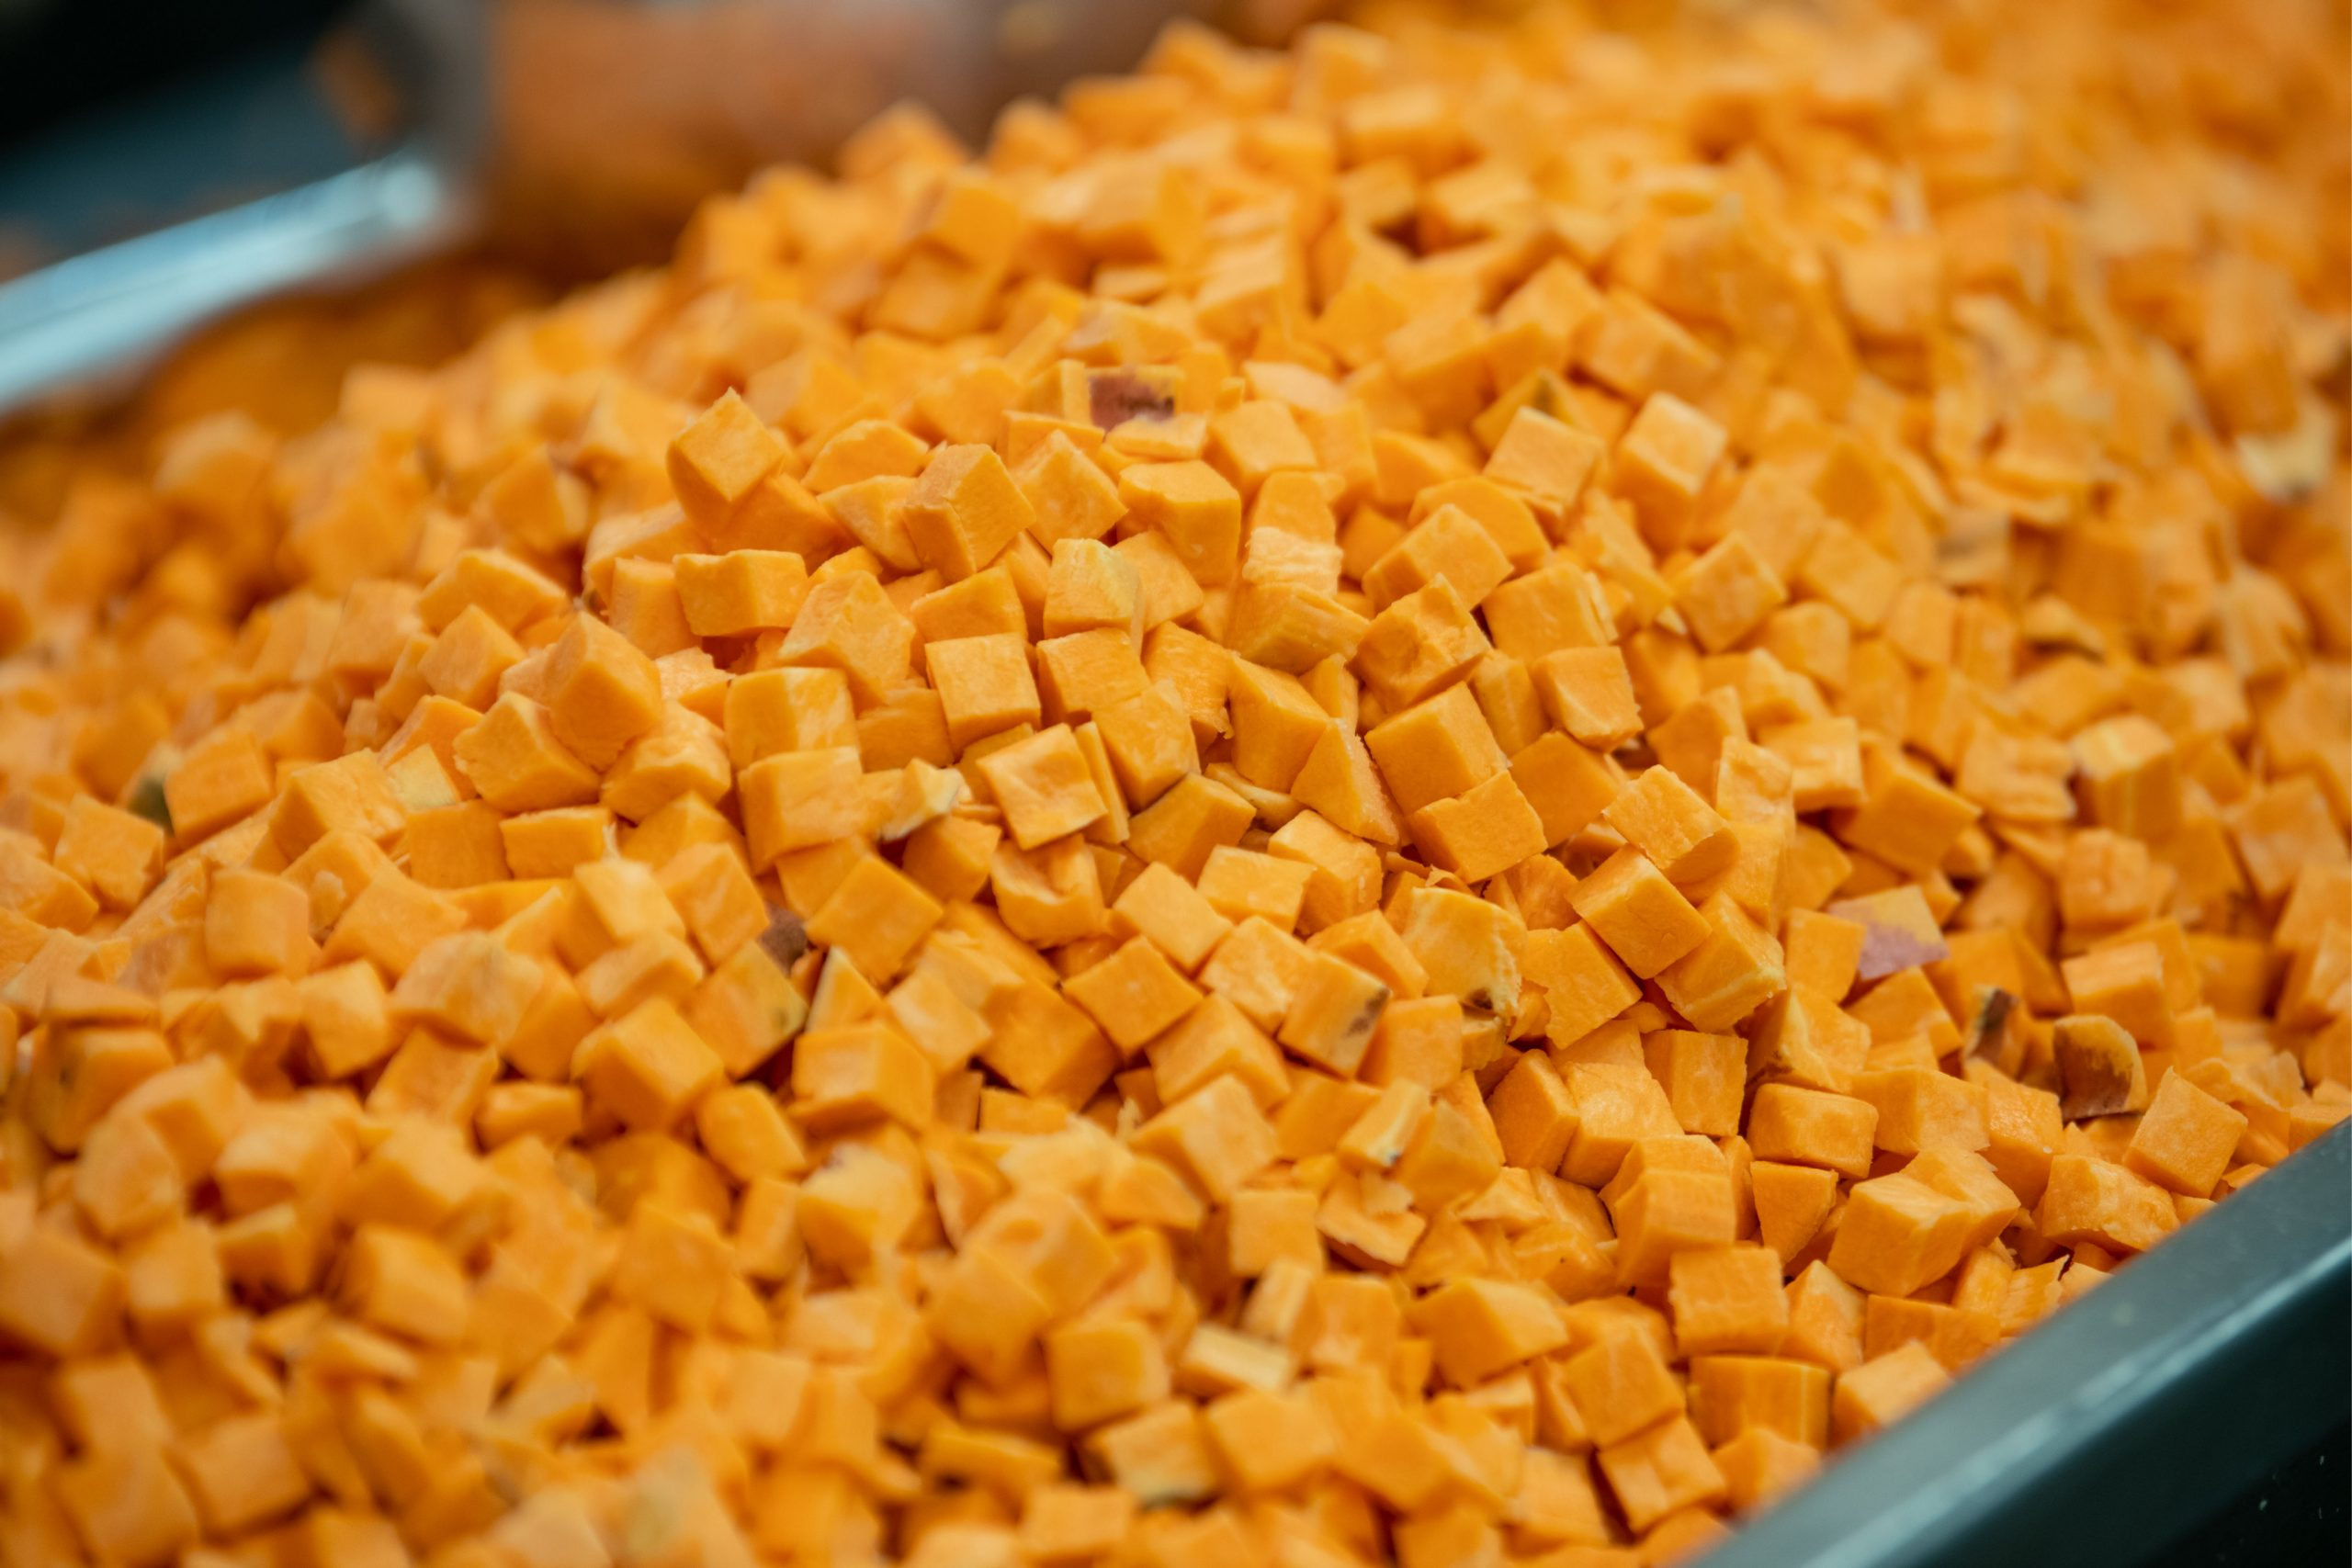 Cubed sweetpotatoes